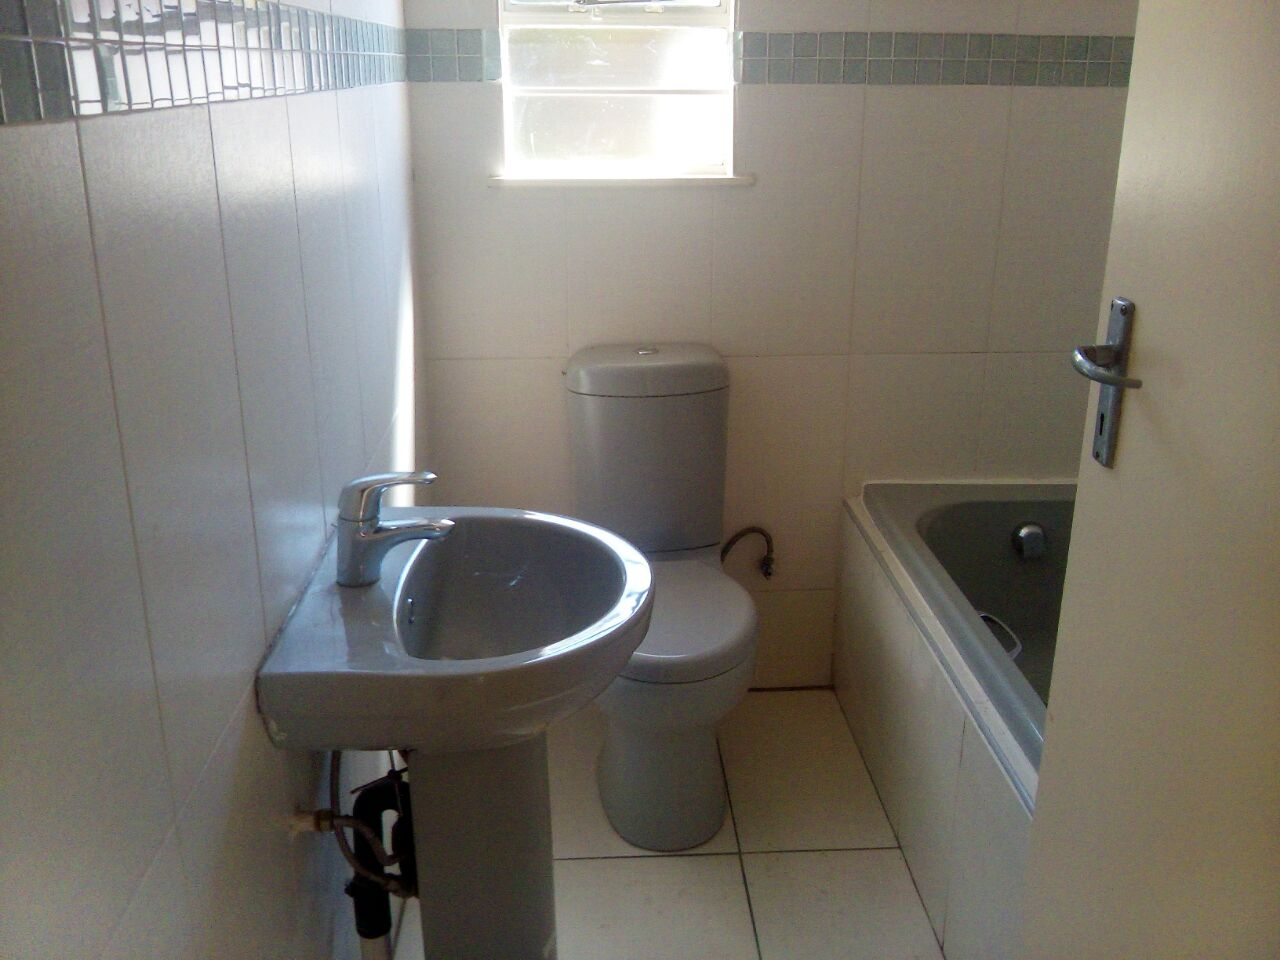 2 Bedroom Townhouse for sale in Sunninghill ENT0074719 : photo#7